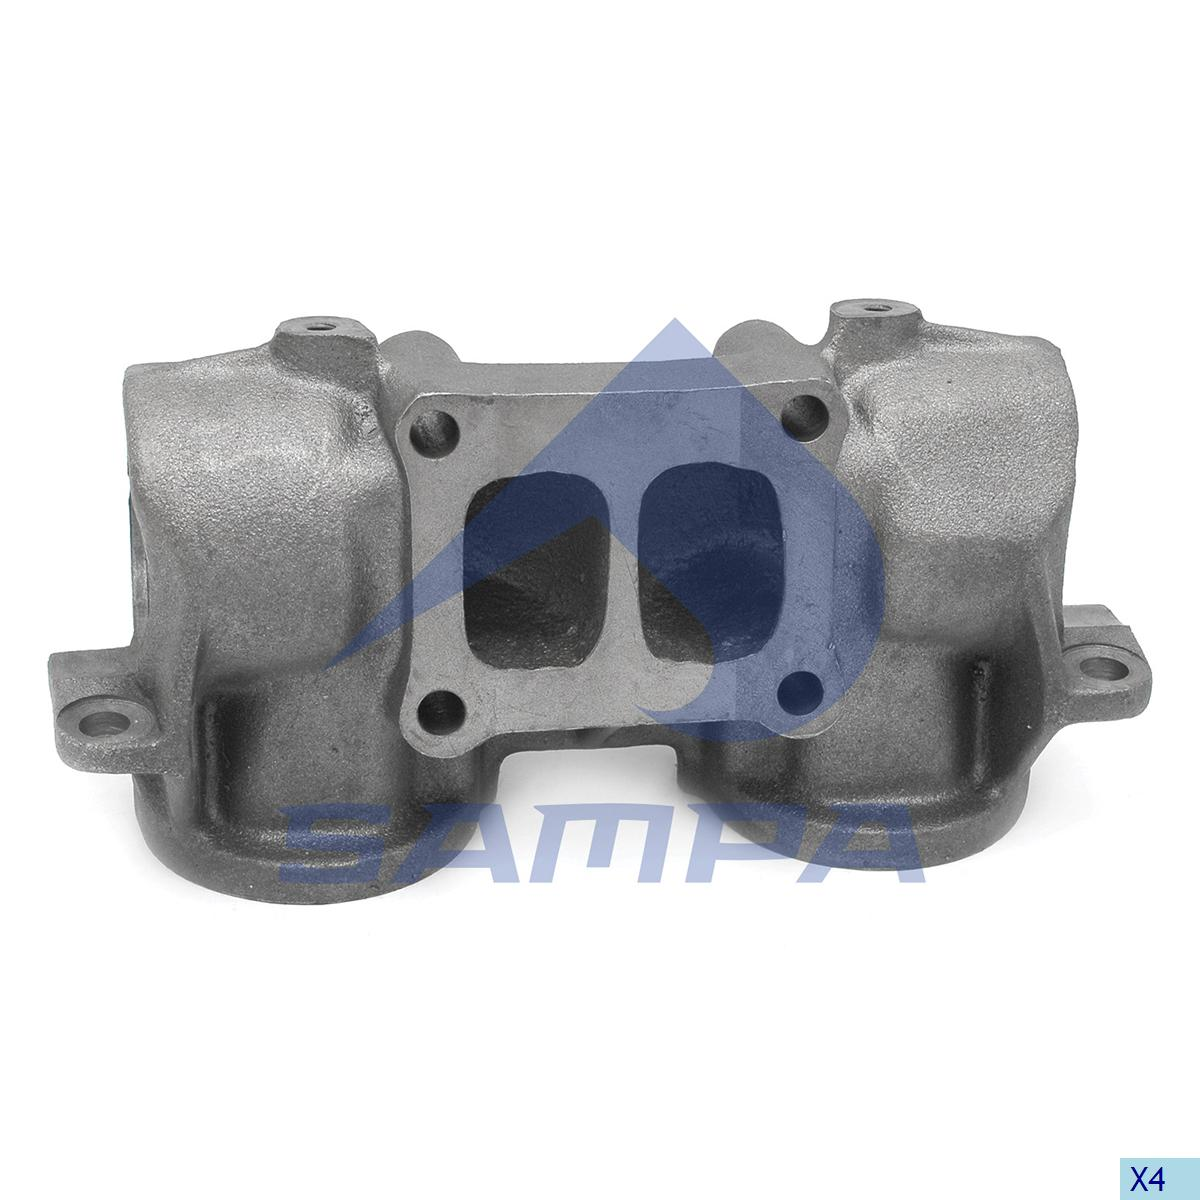 Exhaust Manifold, R.V.I., Engine